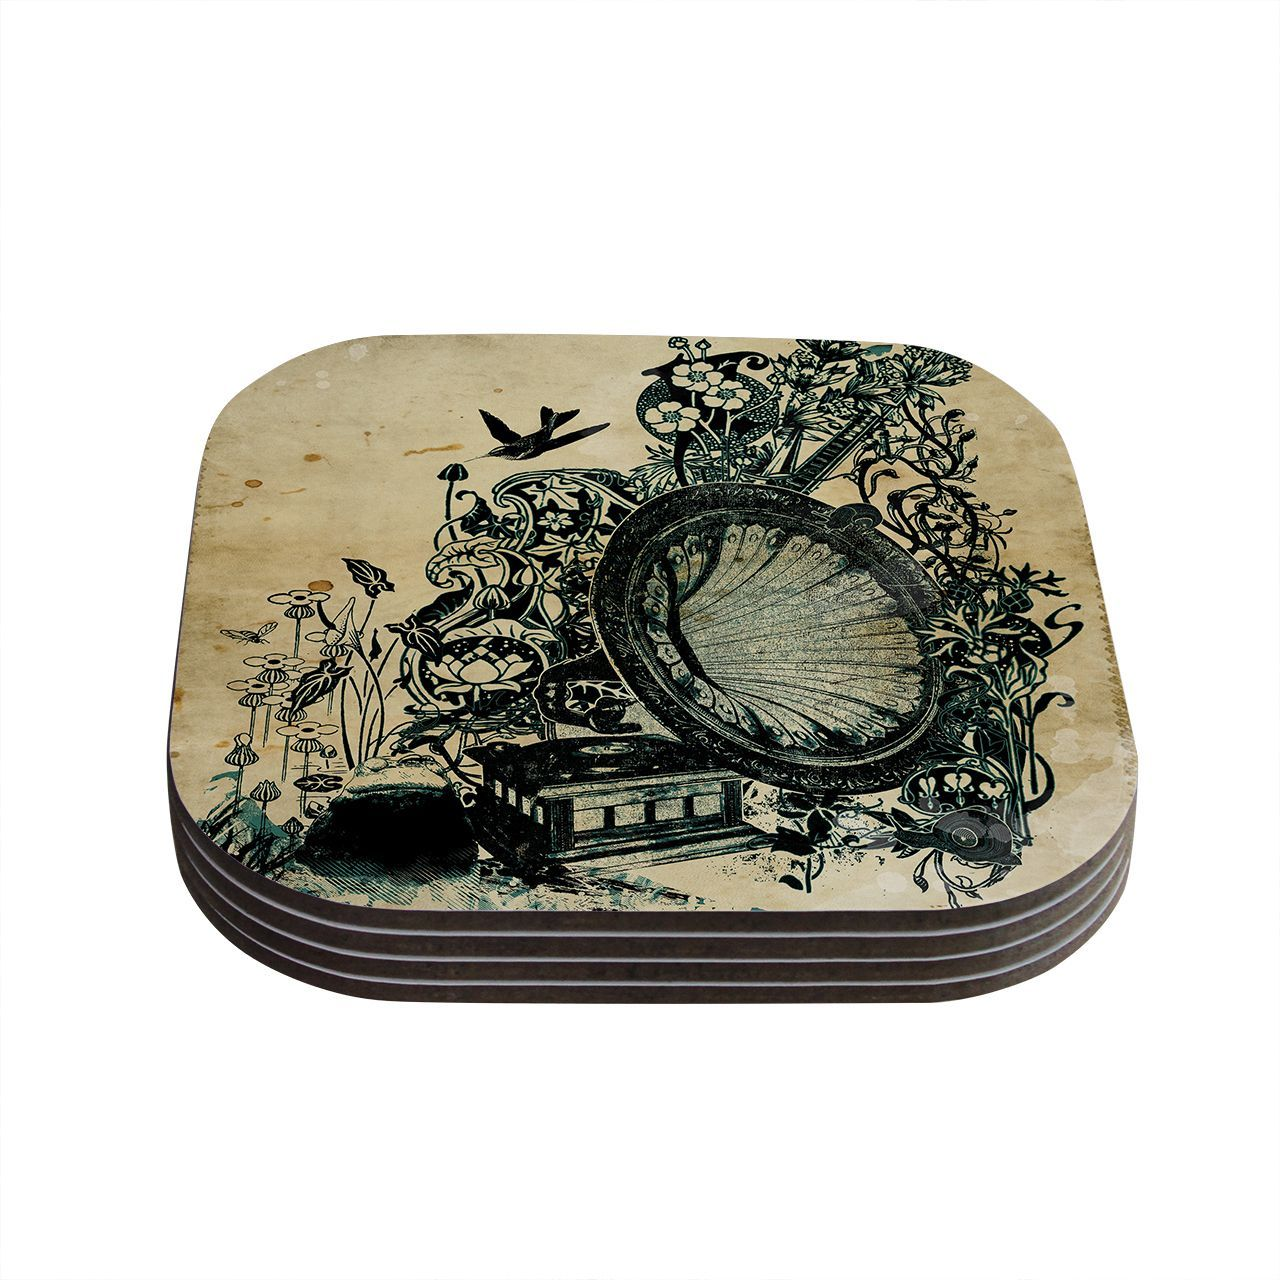 Kess InHouse Frederic Levy-Hadida 'Sound of Nature' Coasters